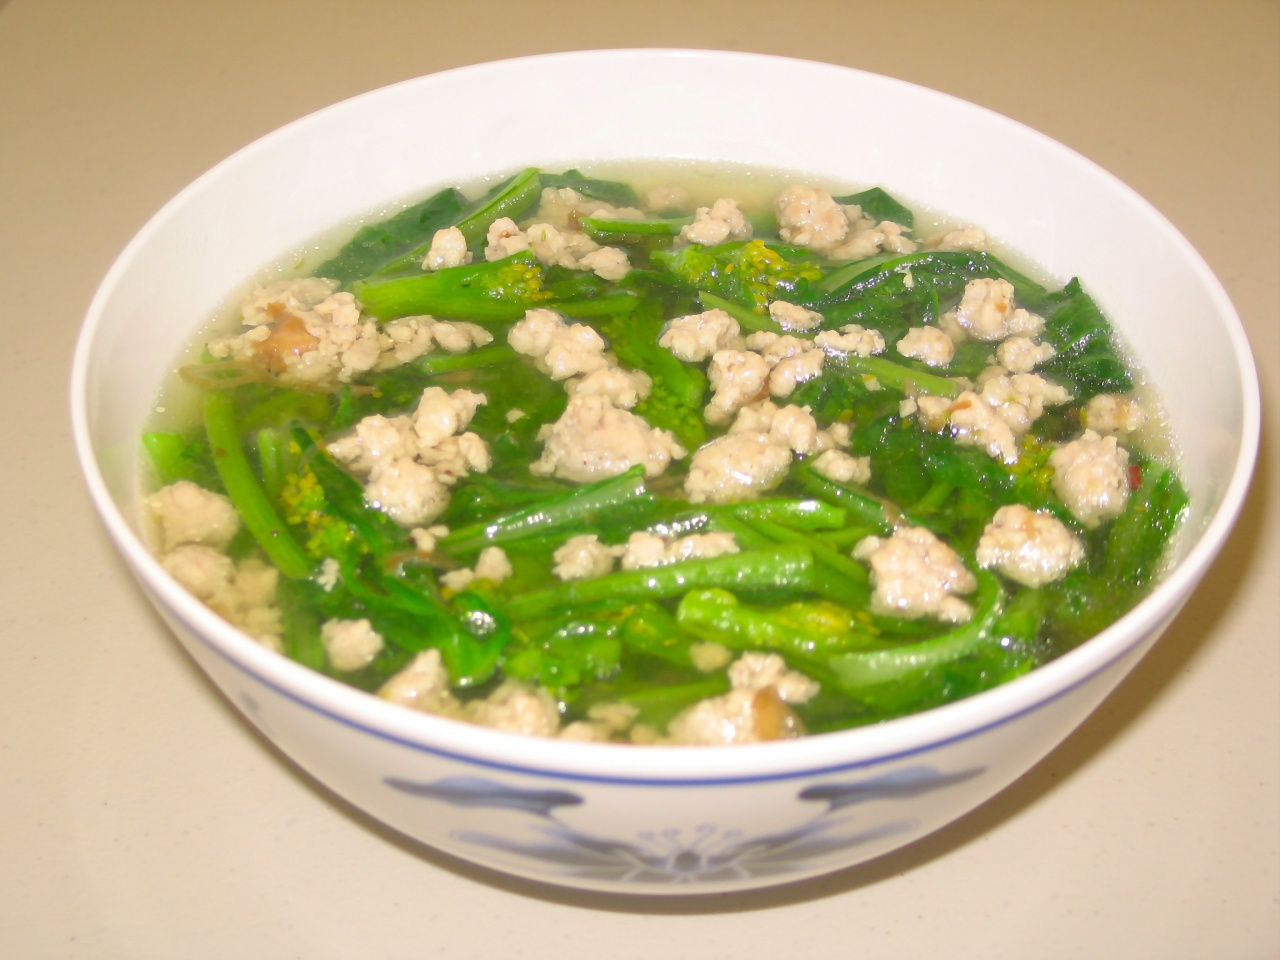 Canh cải ngọt